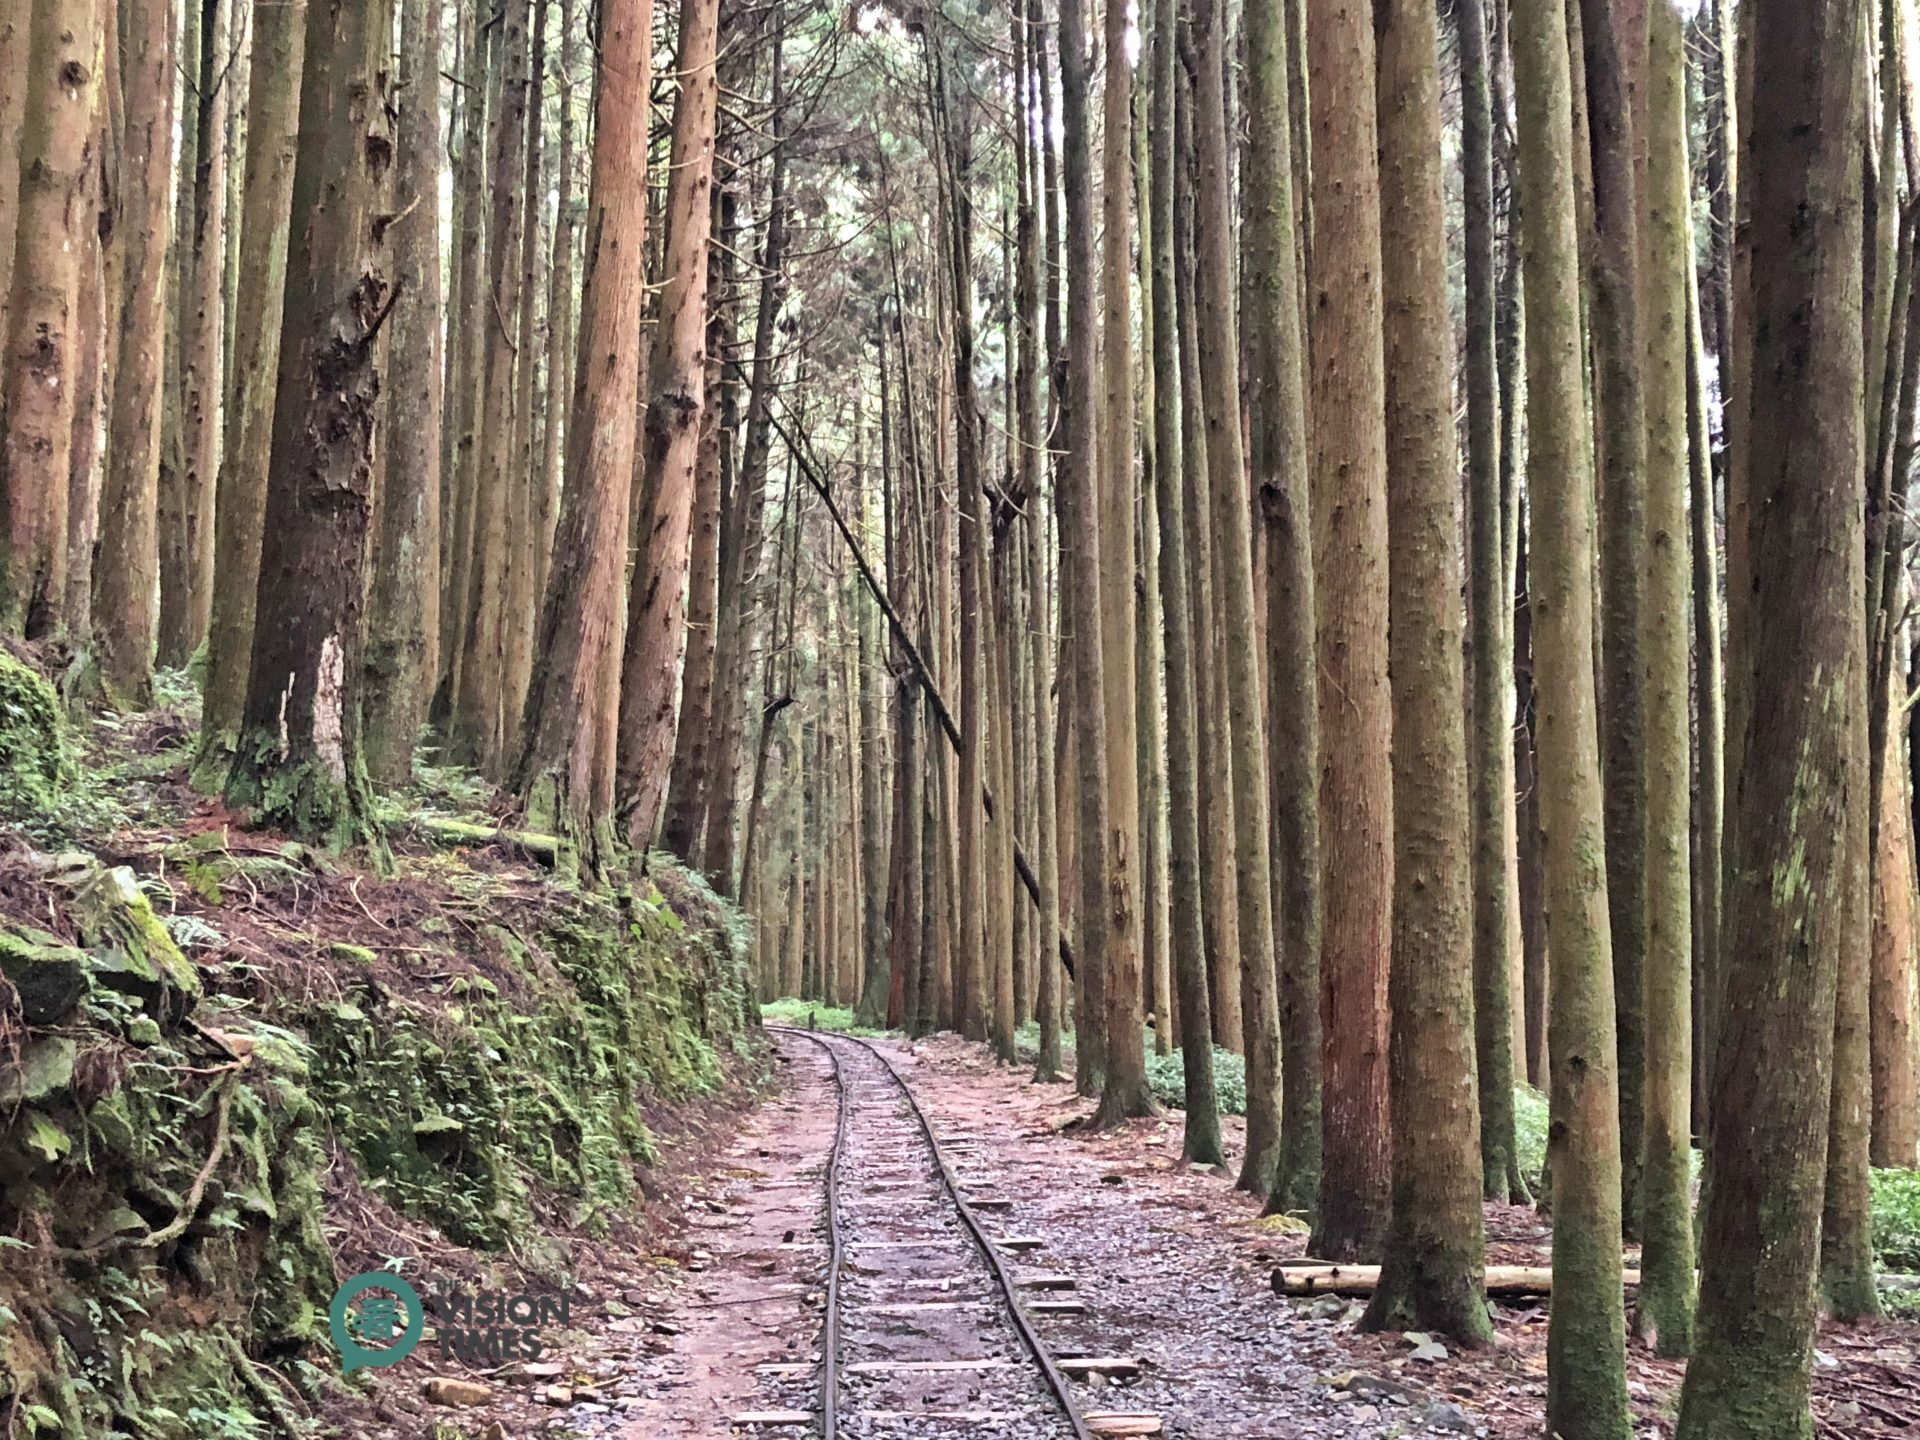 The Tefuye Old Trail was transformed from an abandoned railway and an old hunting trail. (Image: Billy Shyu / Vision Times)